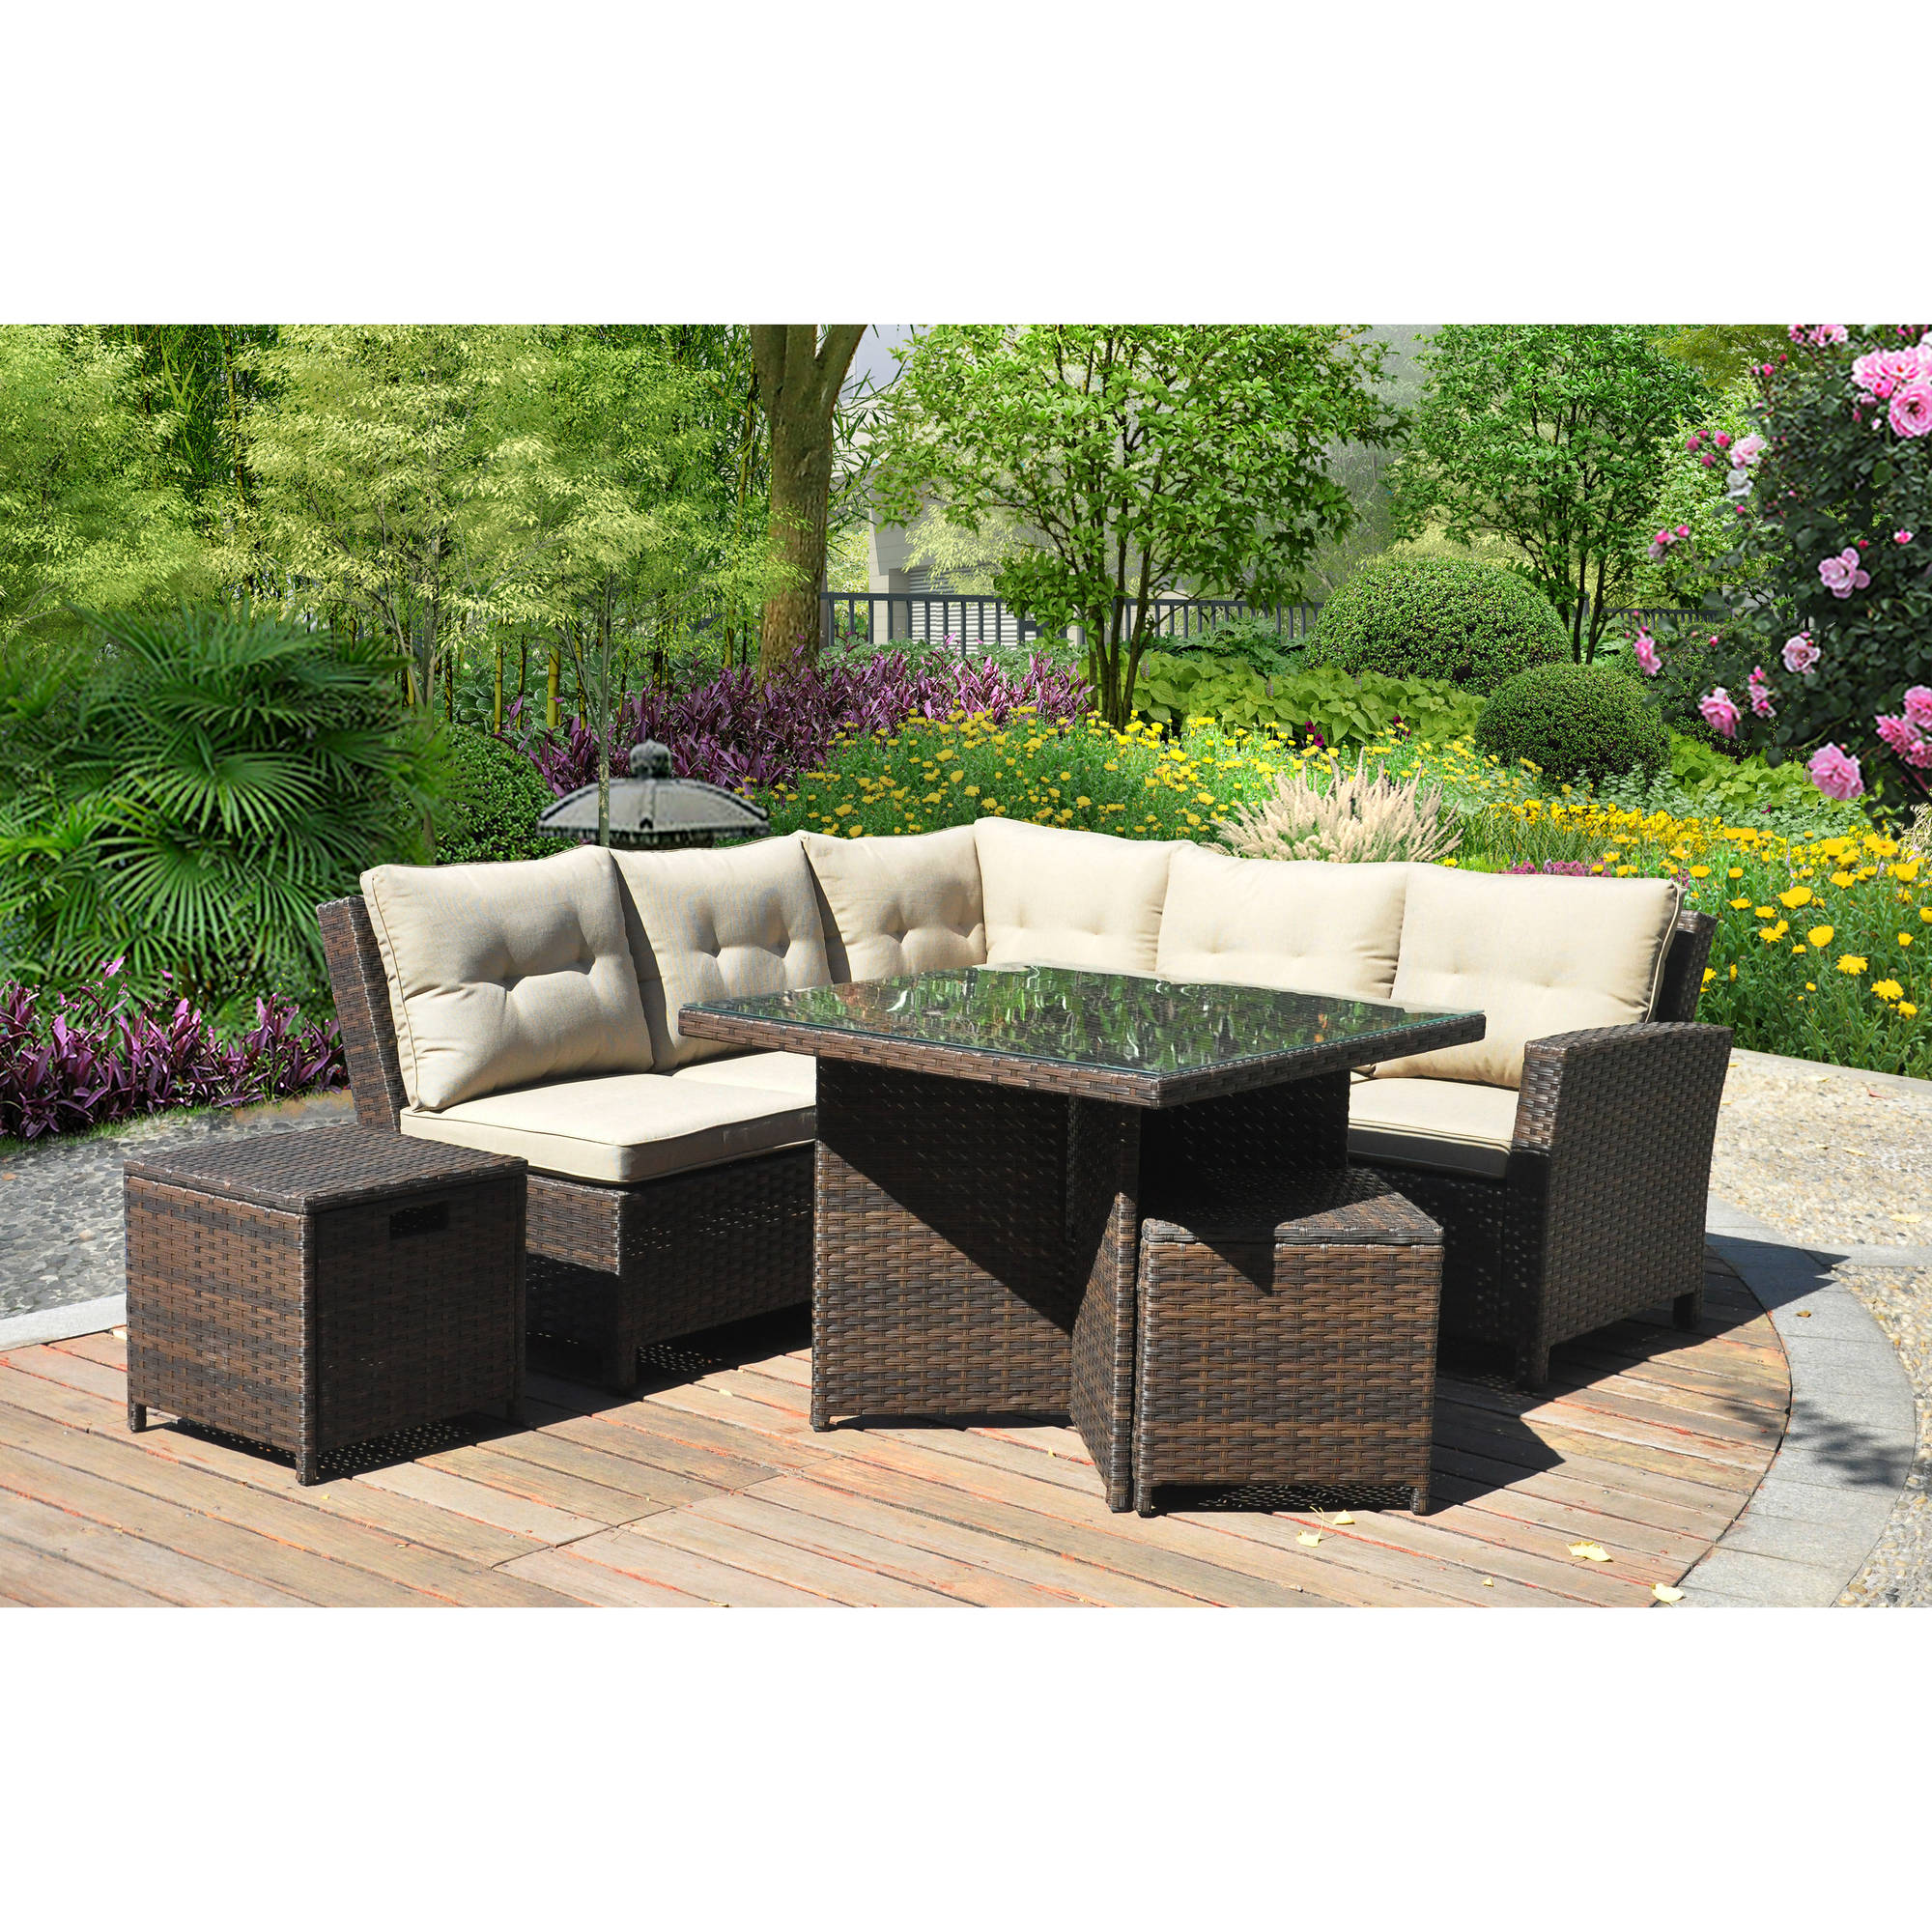 Wonderful Better Homes And Gardens Cadence Wicker 3 Piece Outdoor Sectional Sofa Set,  Tan, Seats 5   Walmart.com